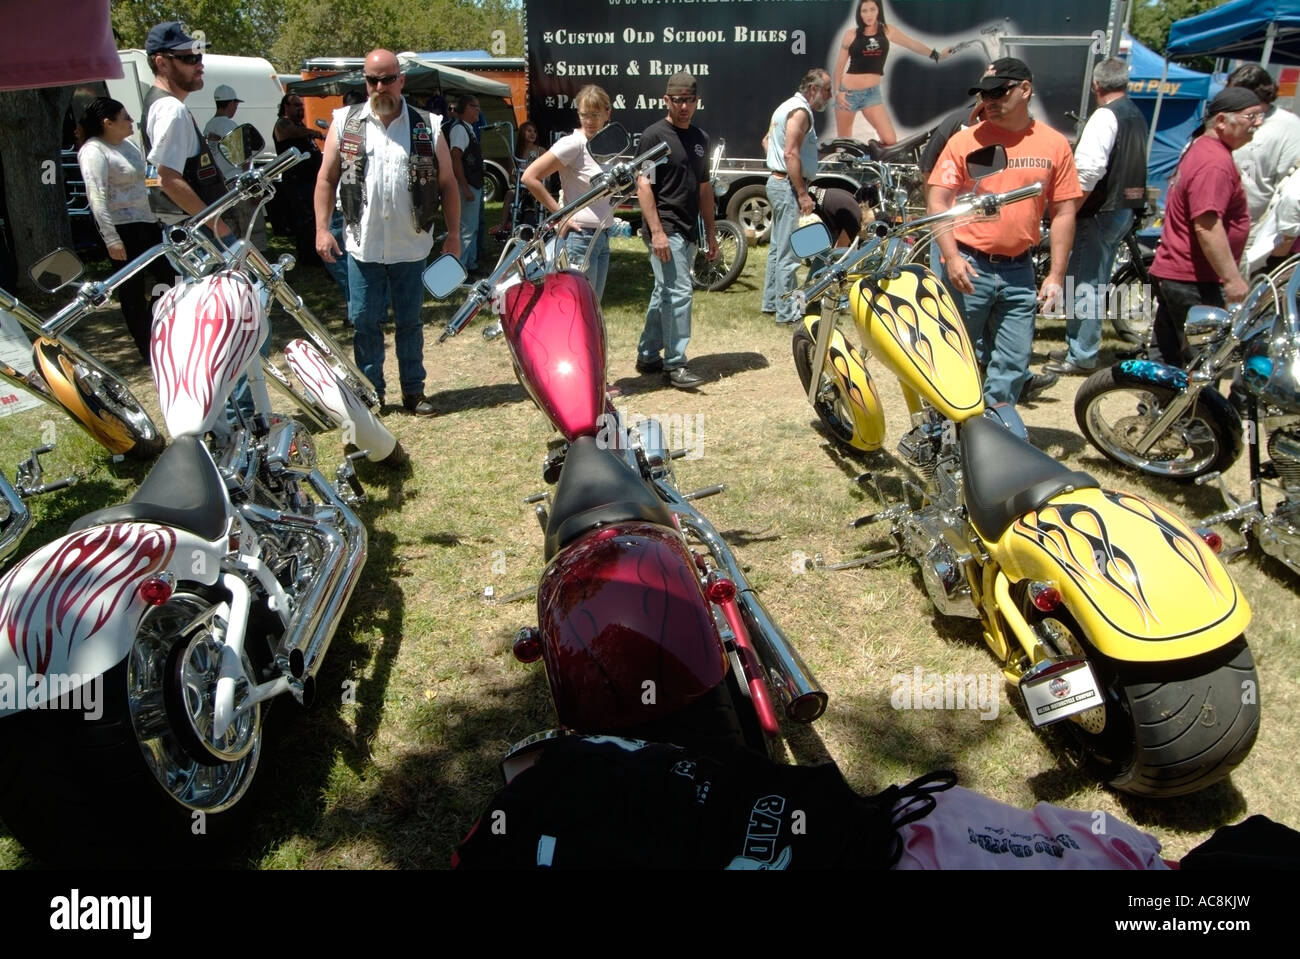 Bikers looking at Bad Pig custom Choppers on sale  Photo by Chuck